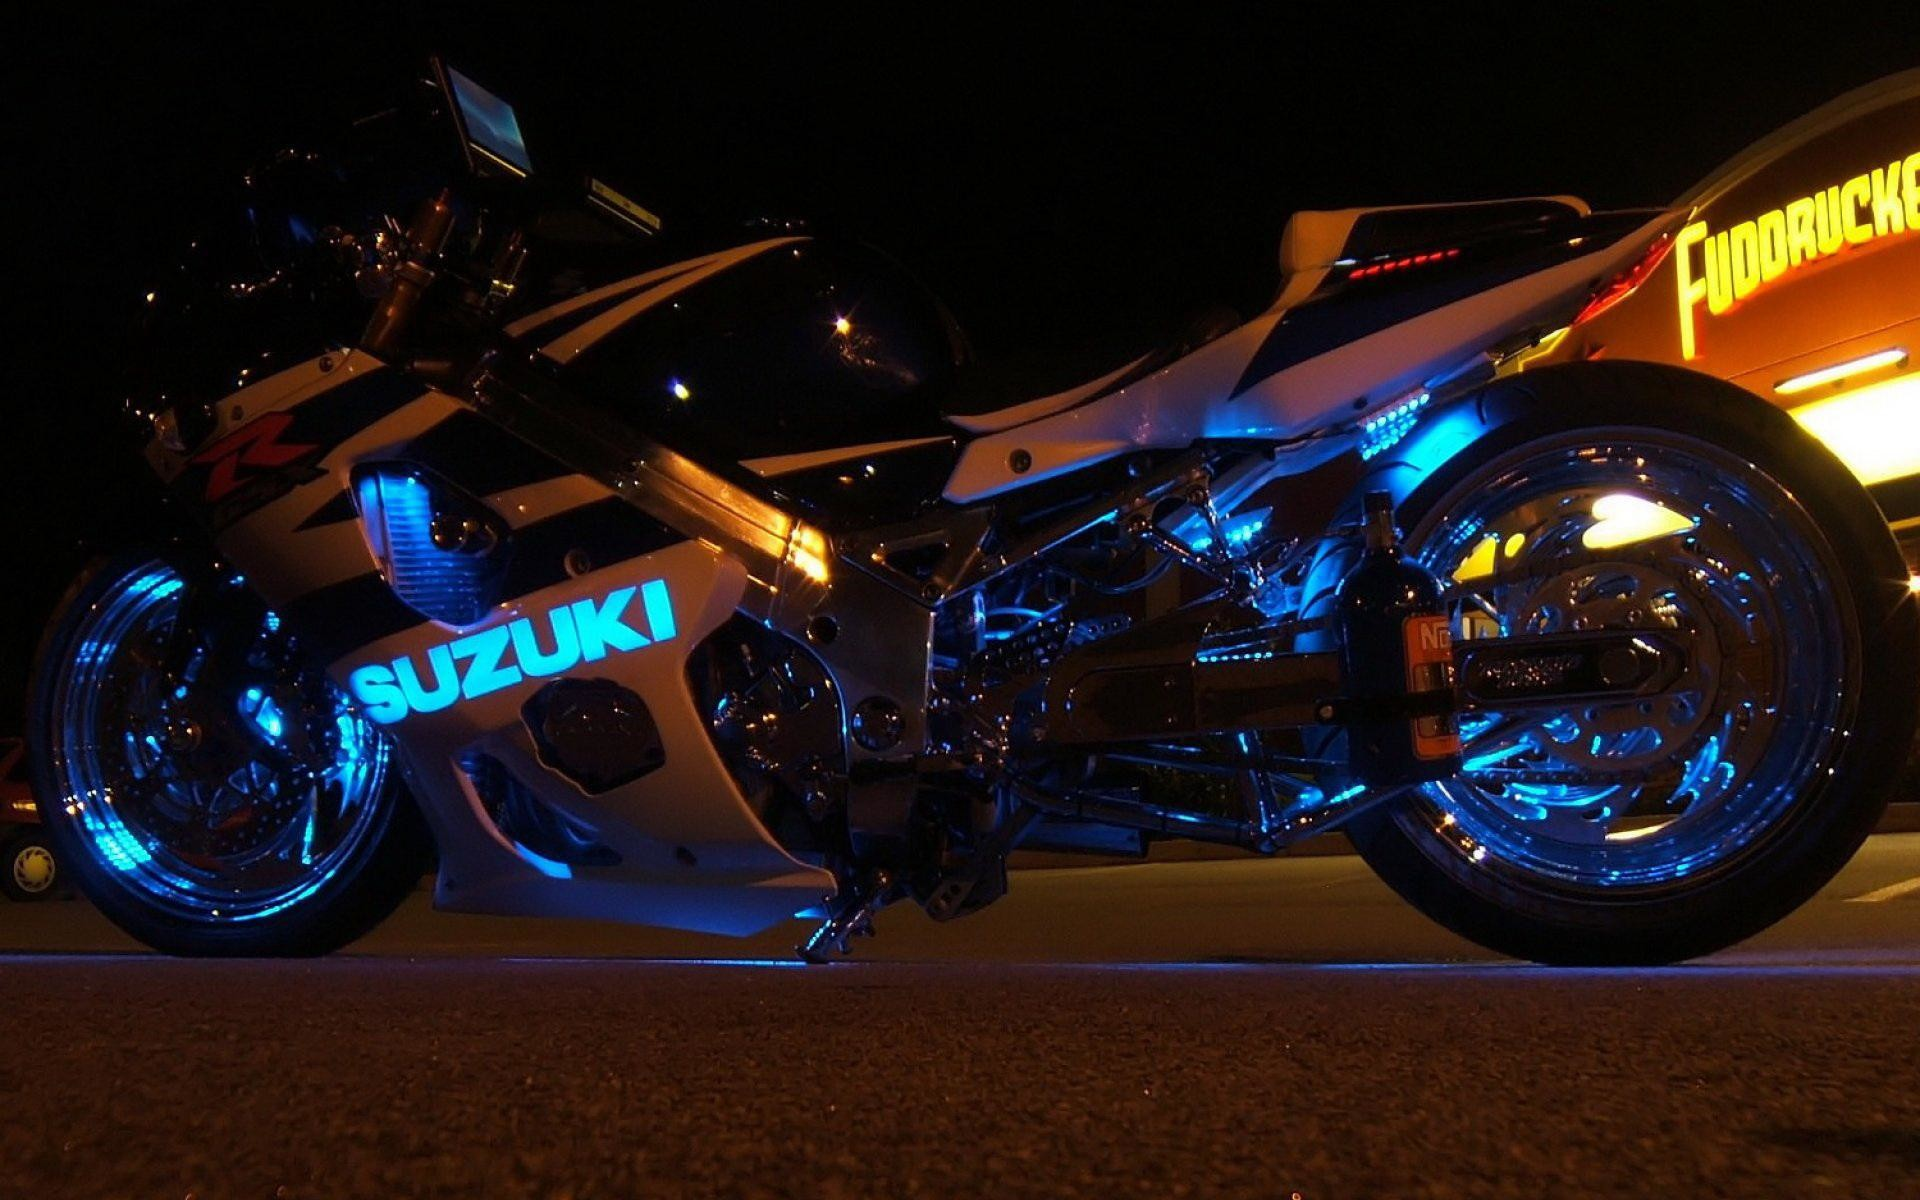 1920x1200 TUNE SUZUKI WALLPAPER - (#78956) - HD Wallpapers - [wallpapersinhq.pw